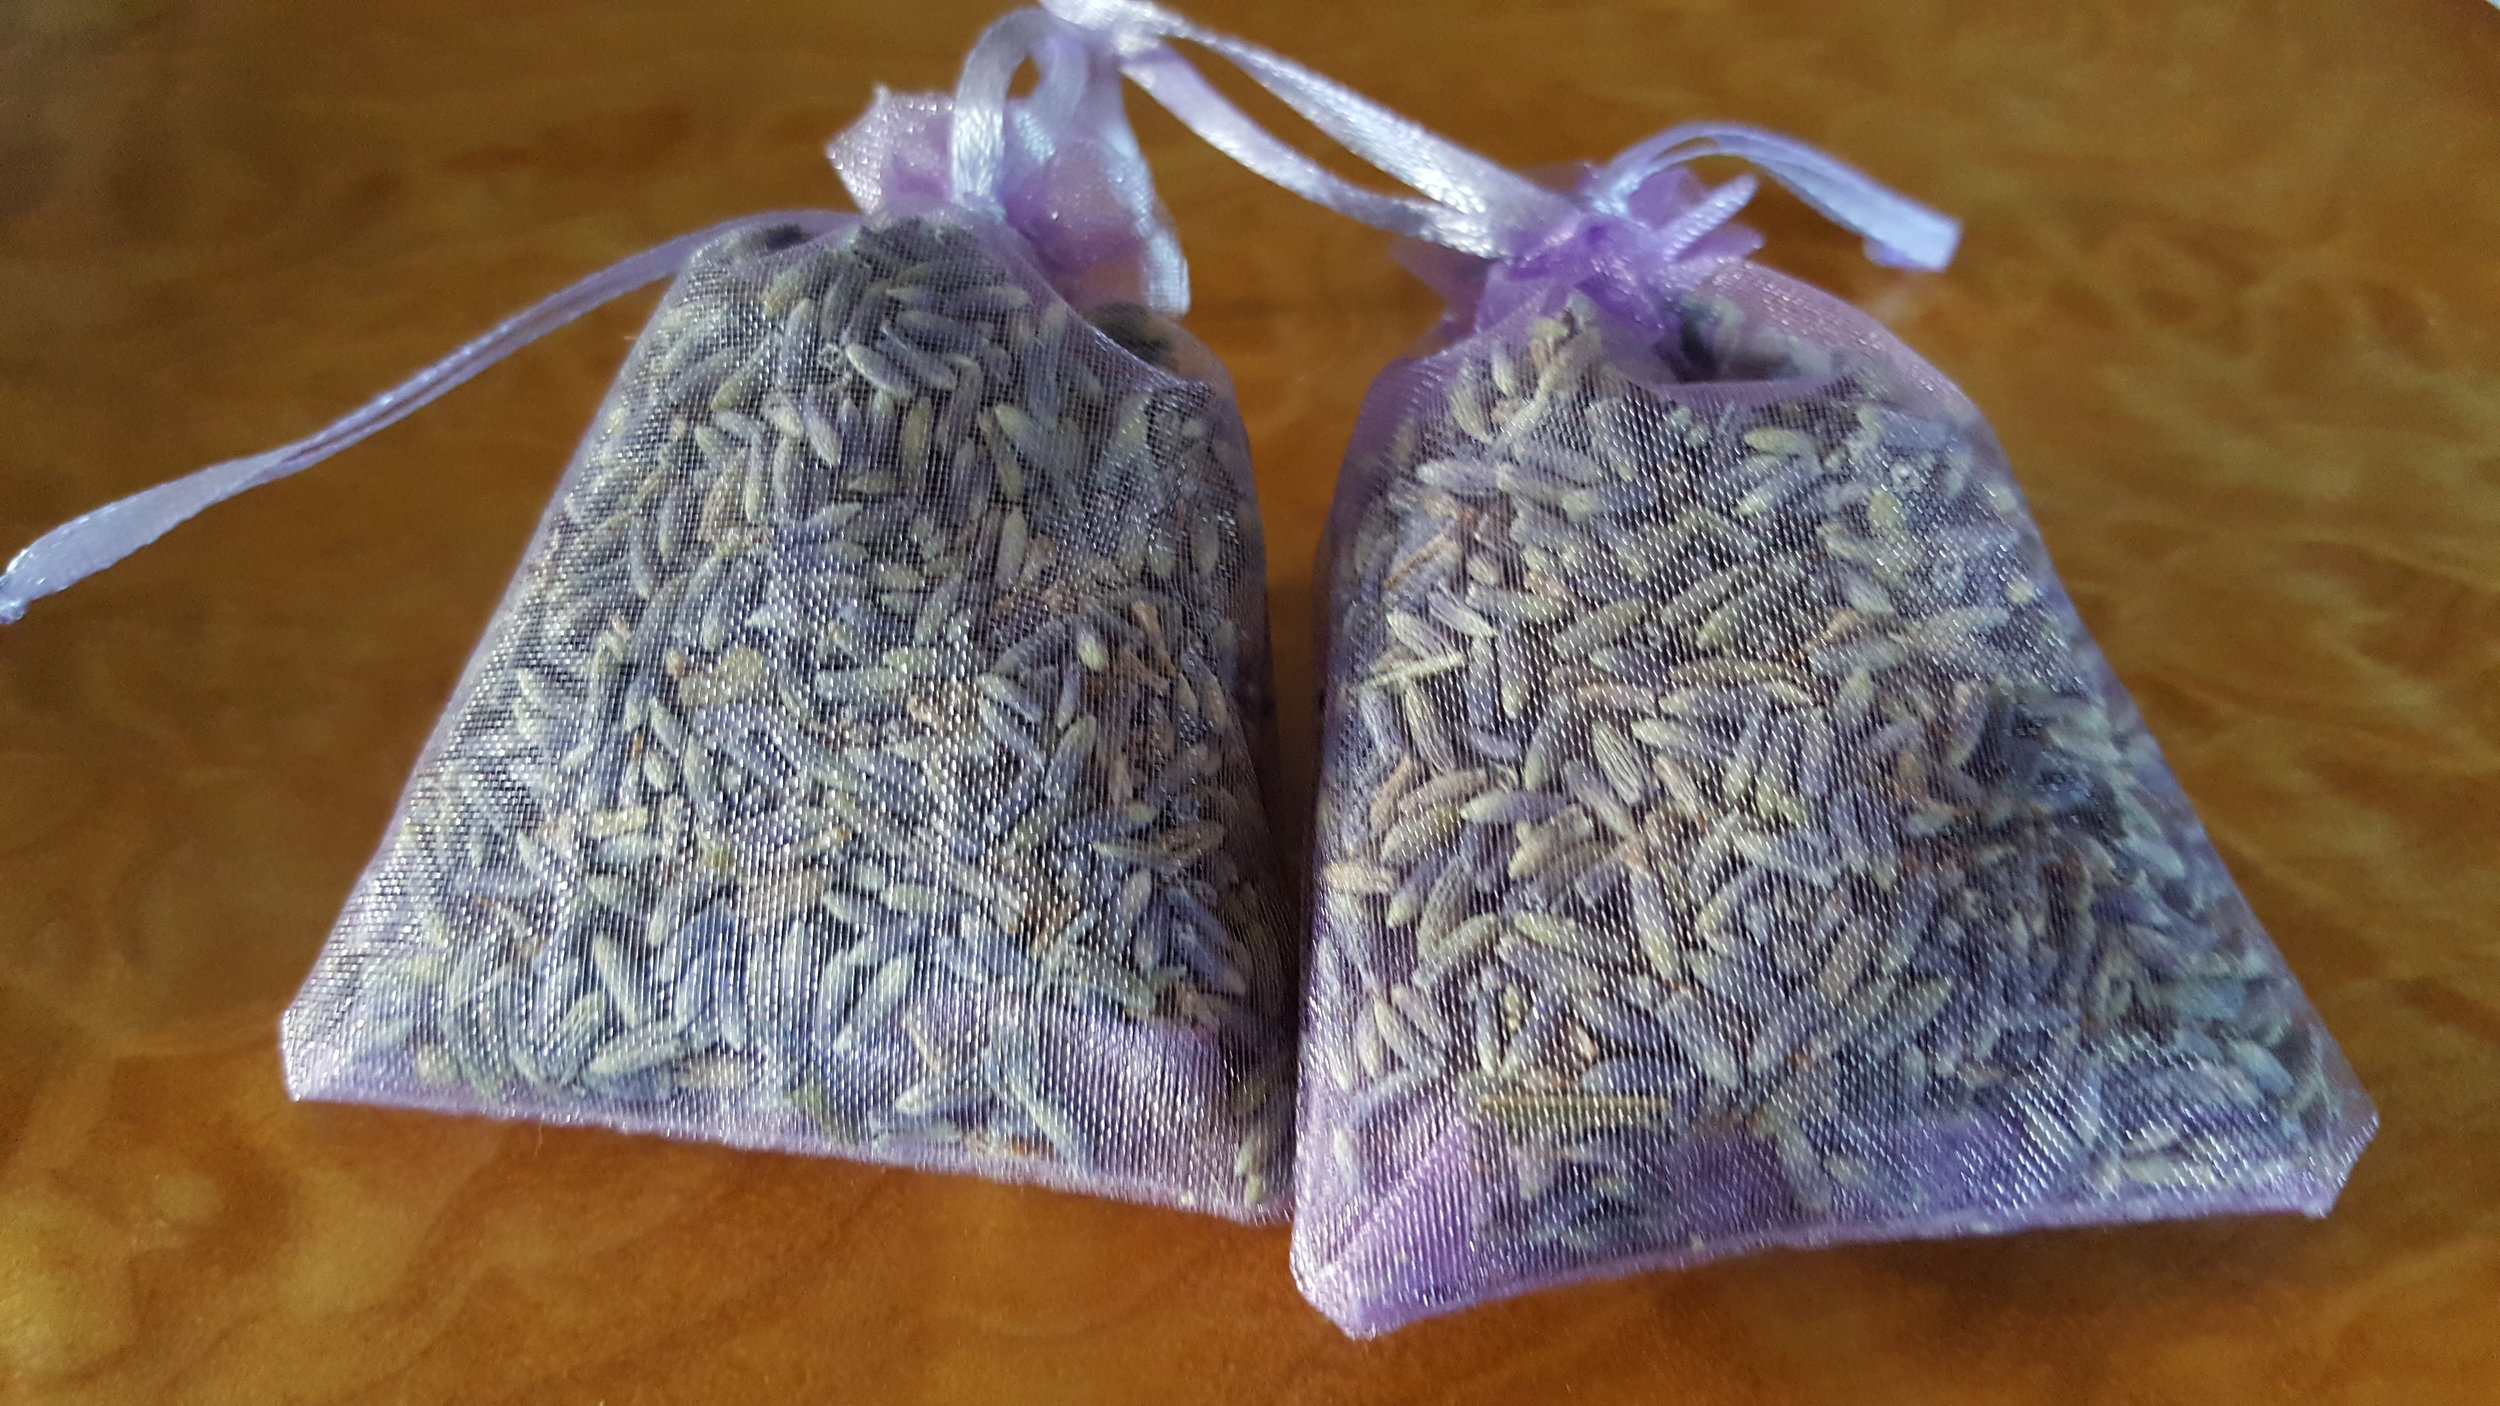 Lavender sachets purchased from the Corvallis Farmers market - I tuck them underneath my pillows at night for a soothing, relaxing sleep